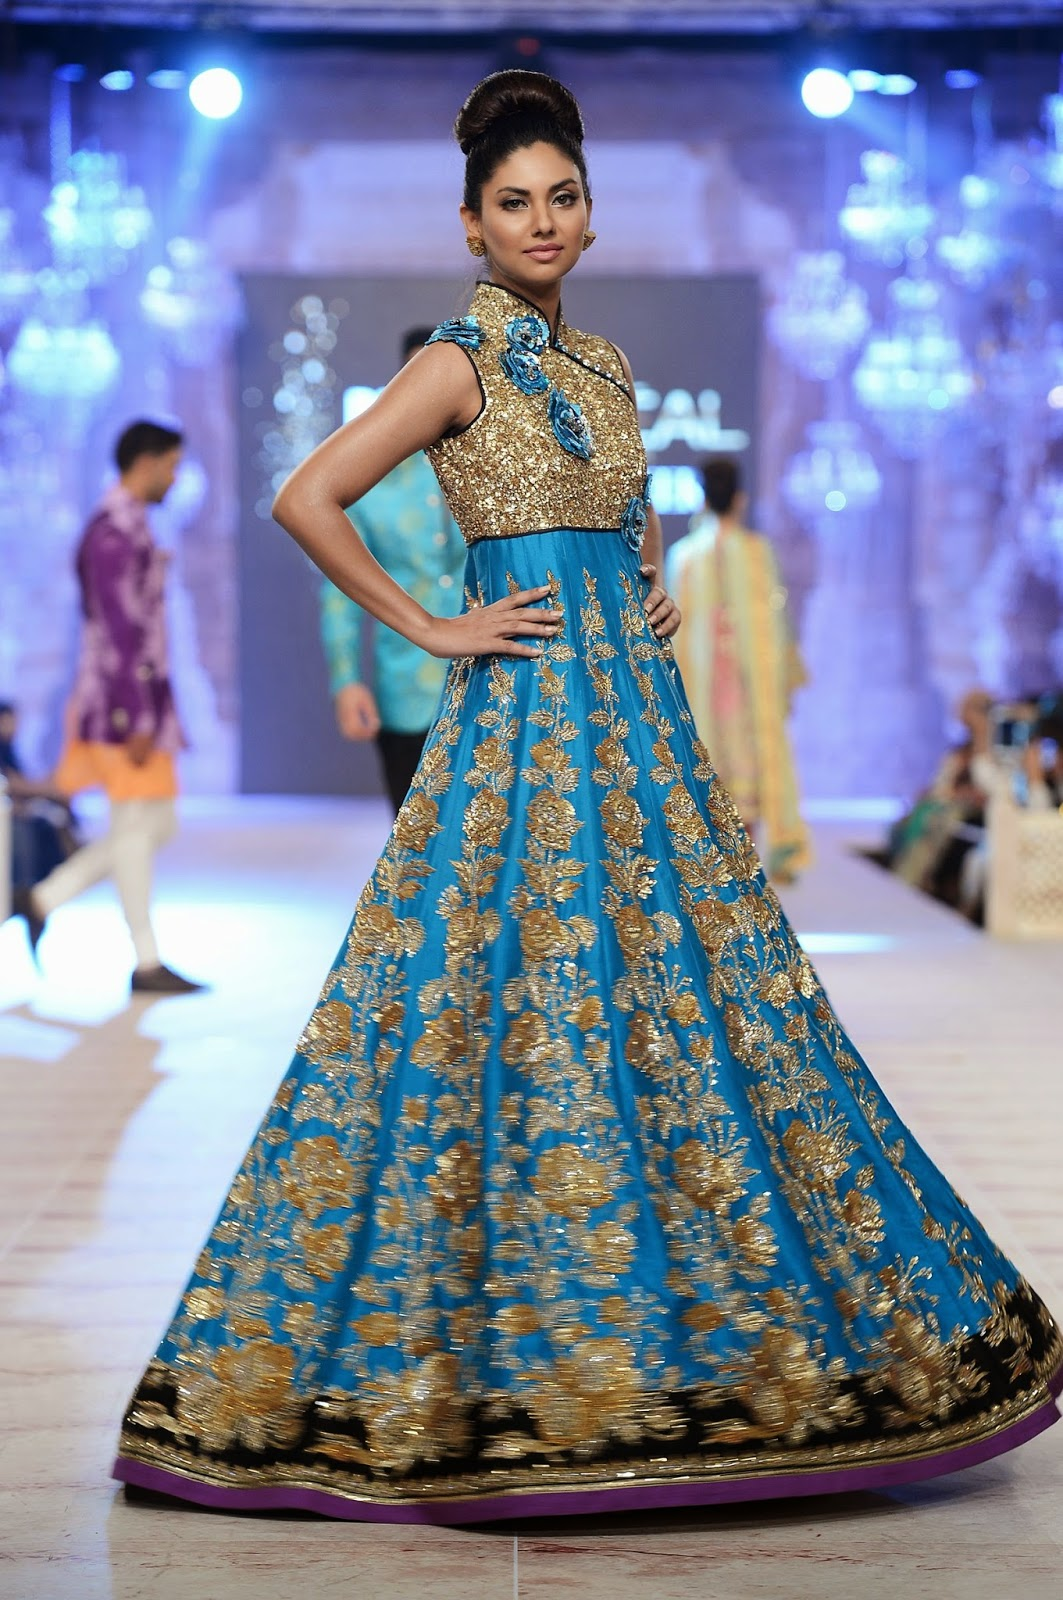 VagabombPicks: The Best of Pakistani Bridal Fashion 2015